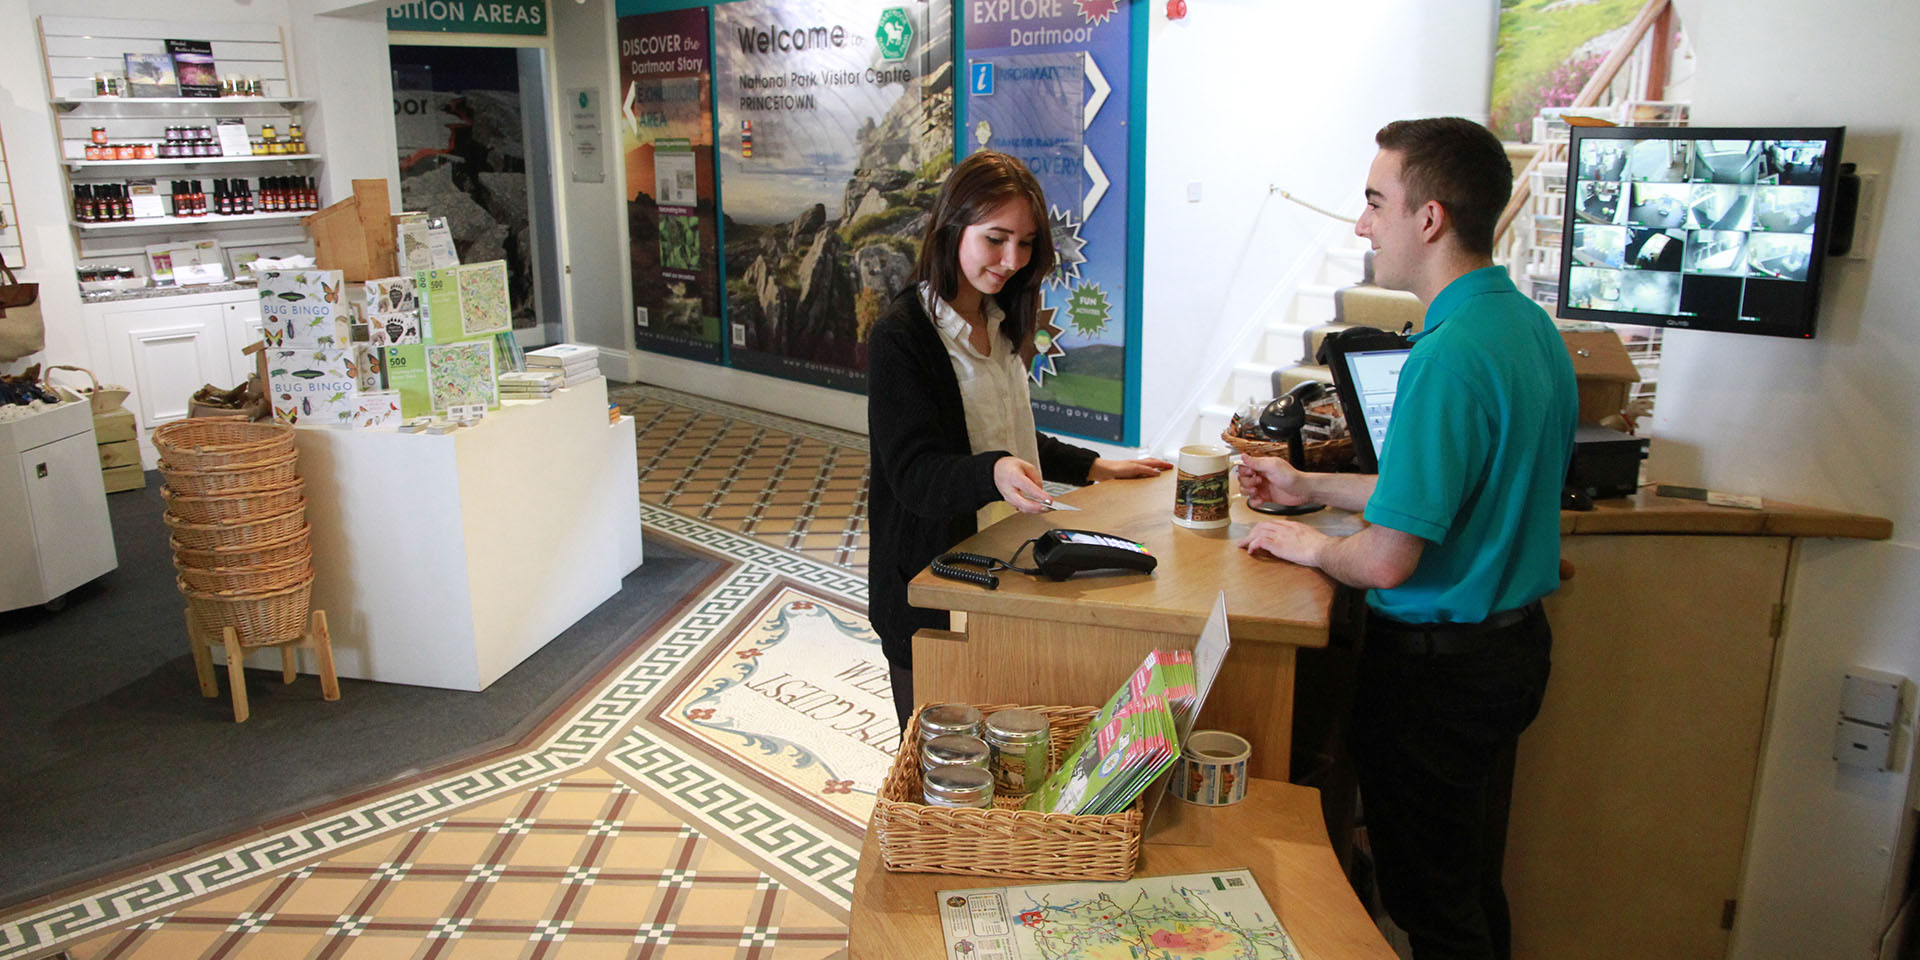 Visitor buying product in visitor centre shop